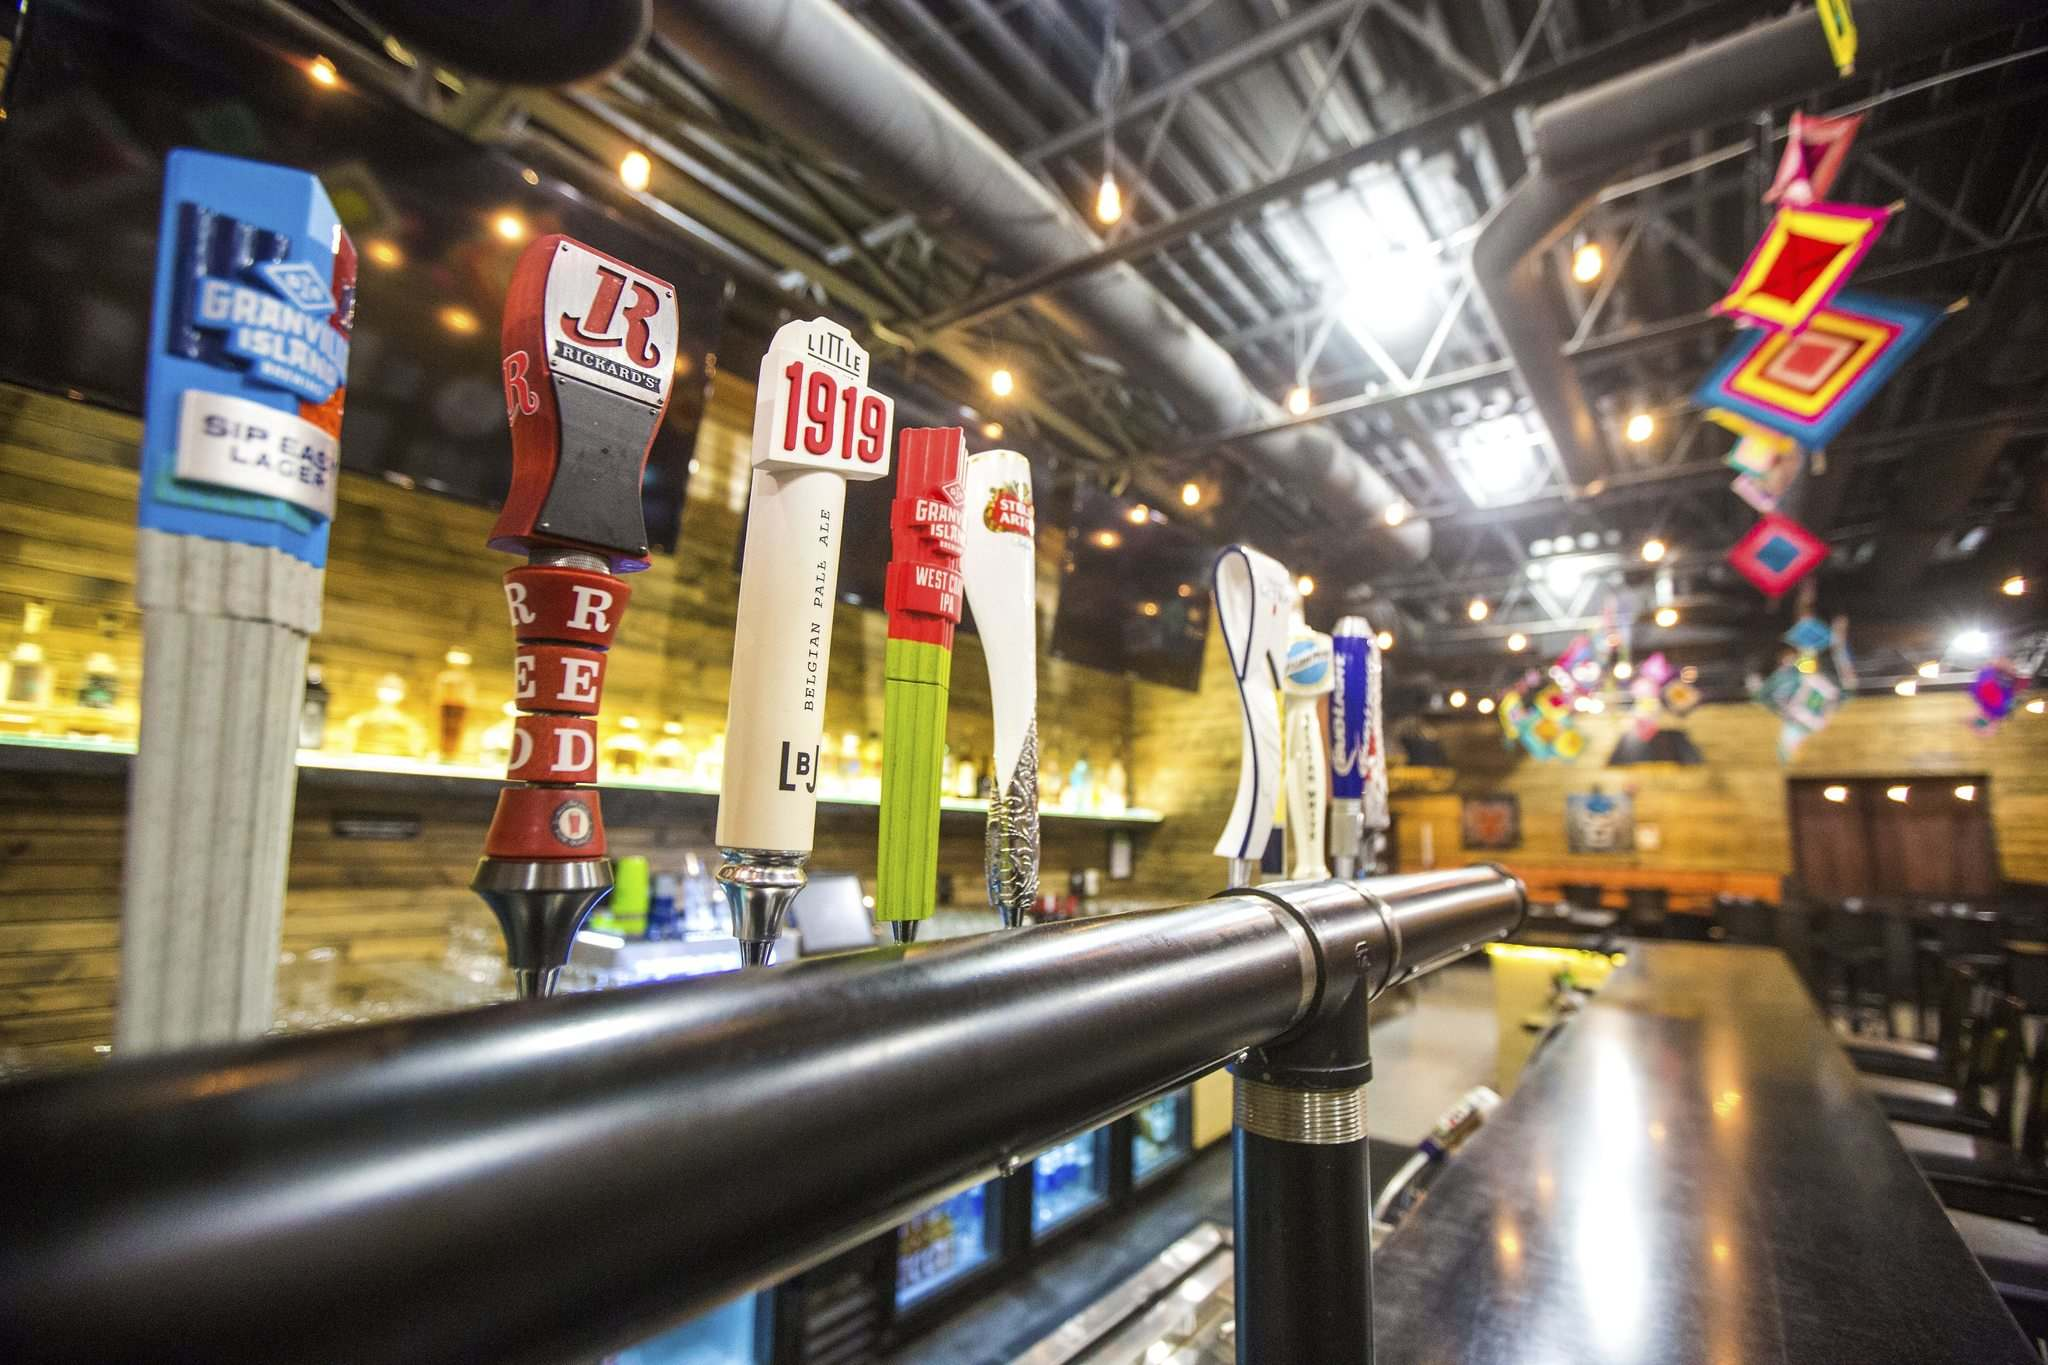 The taps are shut off at LA Roca and 14 other businesses with entertainment licences. (Mikaela MacKenzie / Winnipeg Free Press)